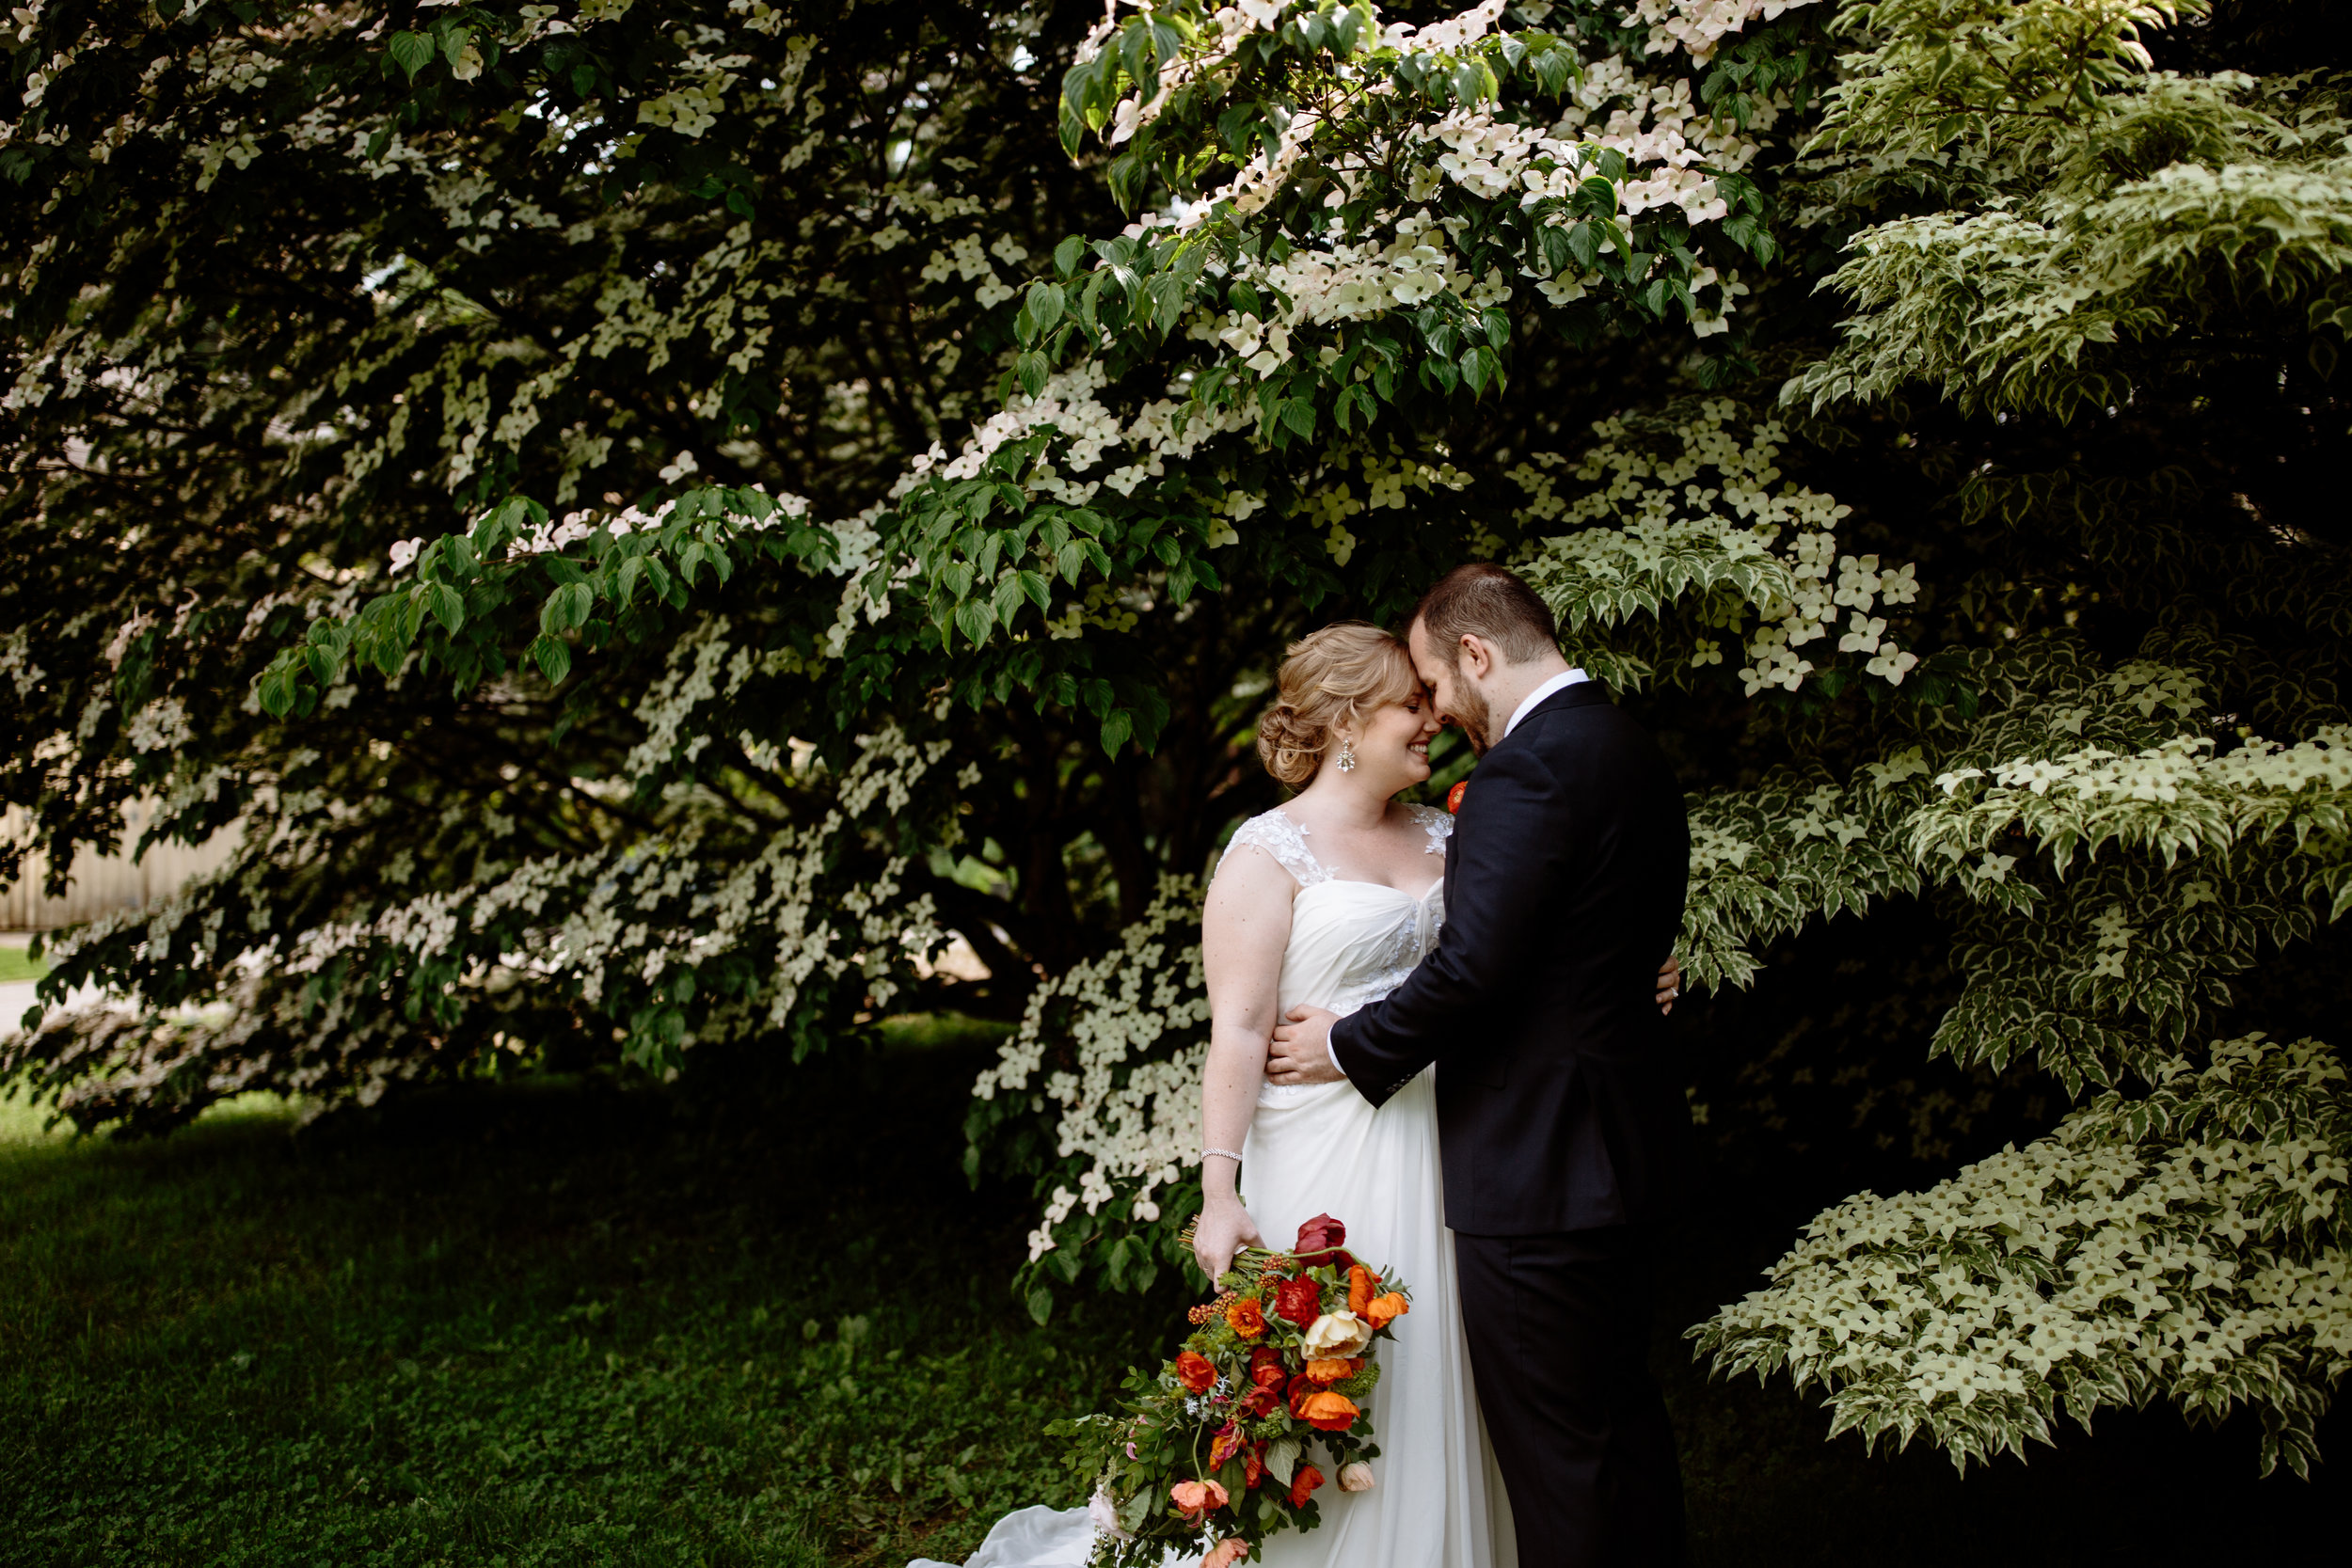 Colorful Delaware County wedding at Tyler Arboretum with Philadelphia Wedding Planner Heart & Dash with With Love and Embers and Wild Stems-189.jpg